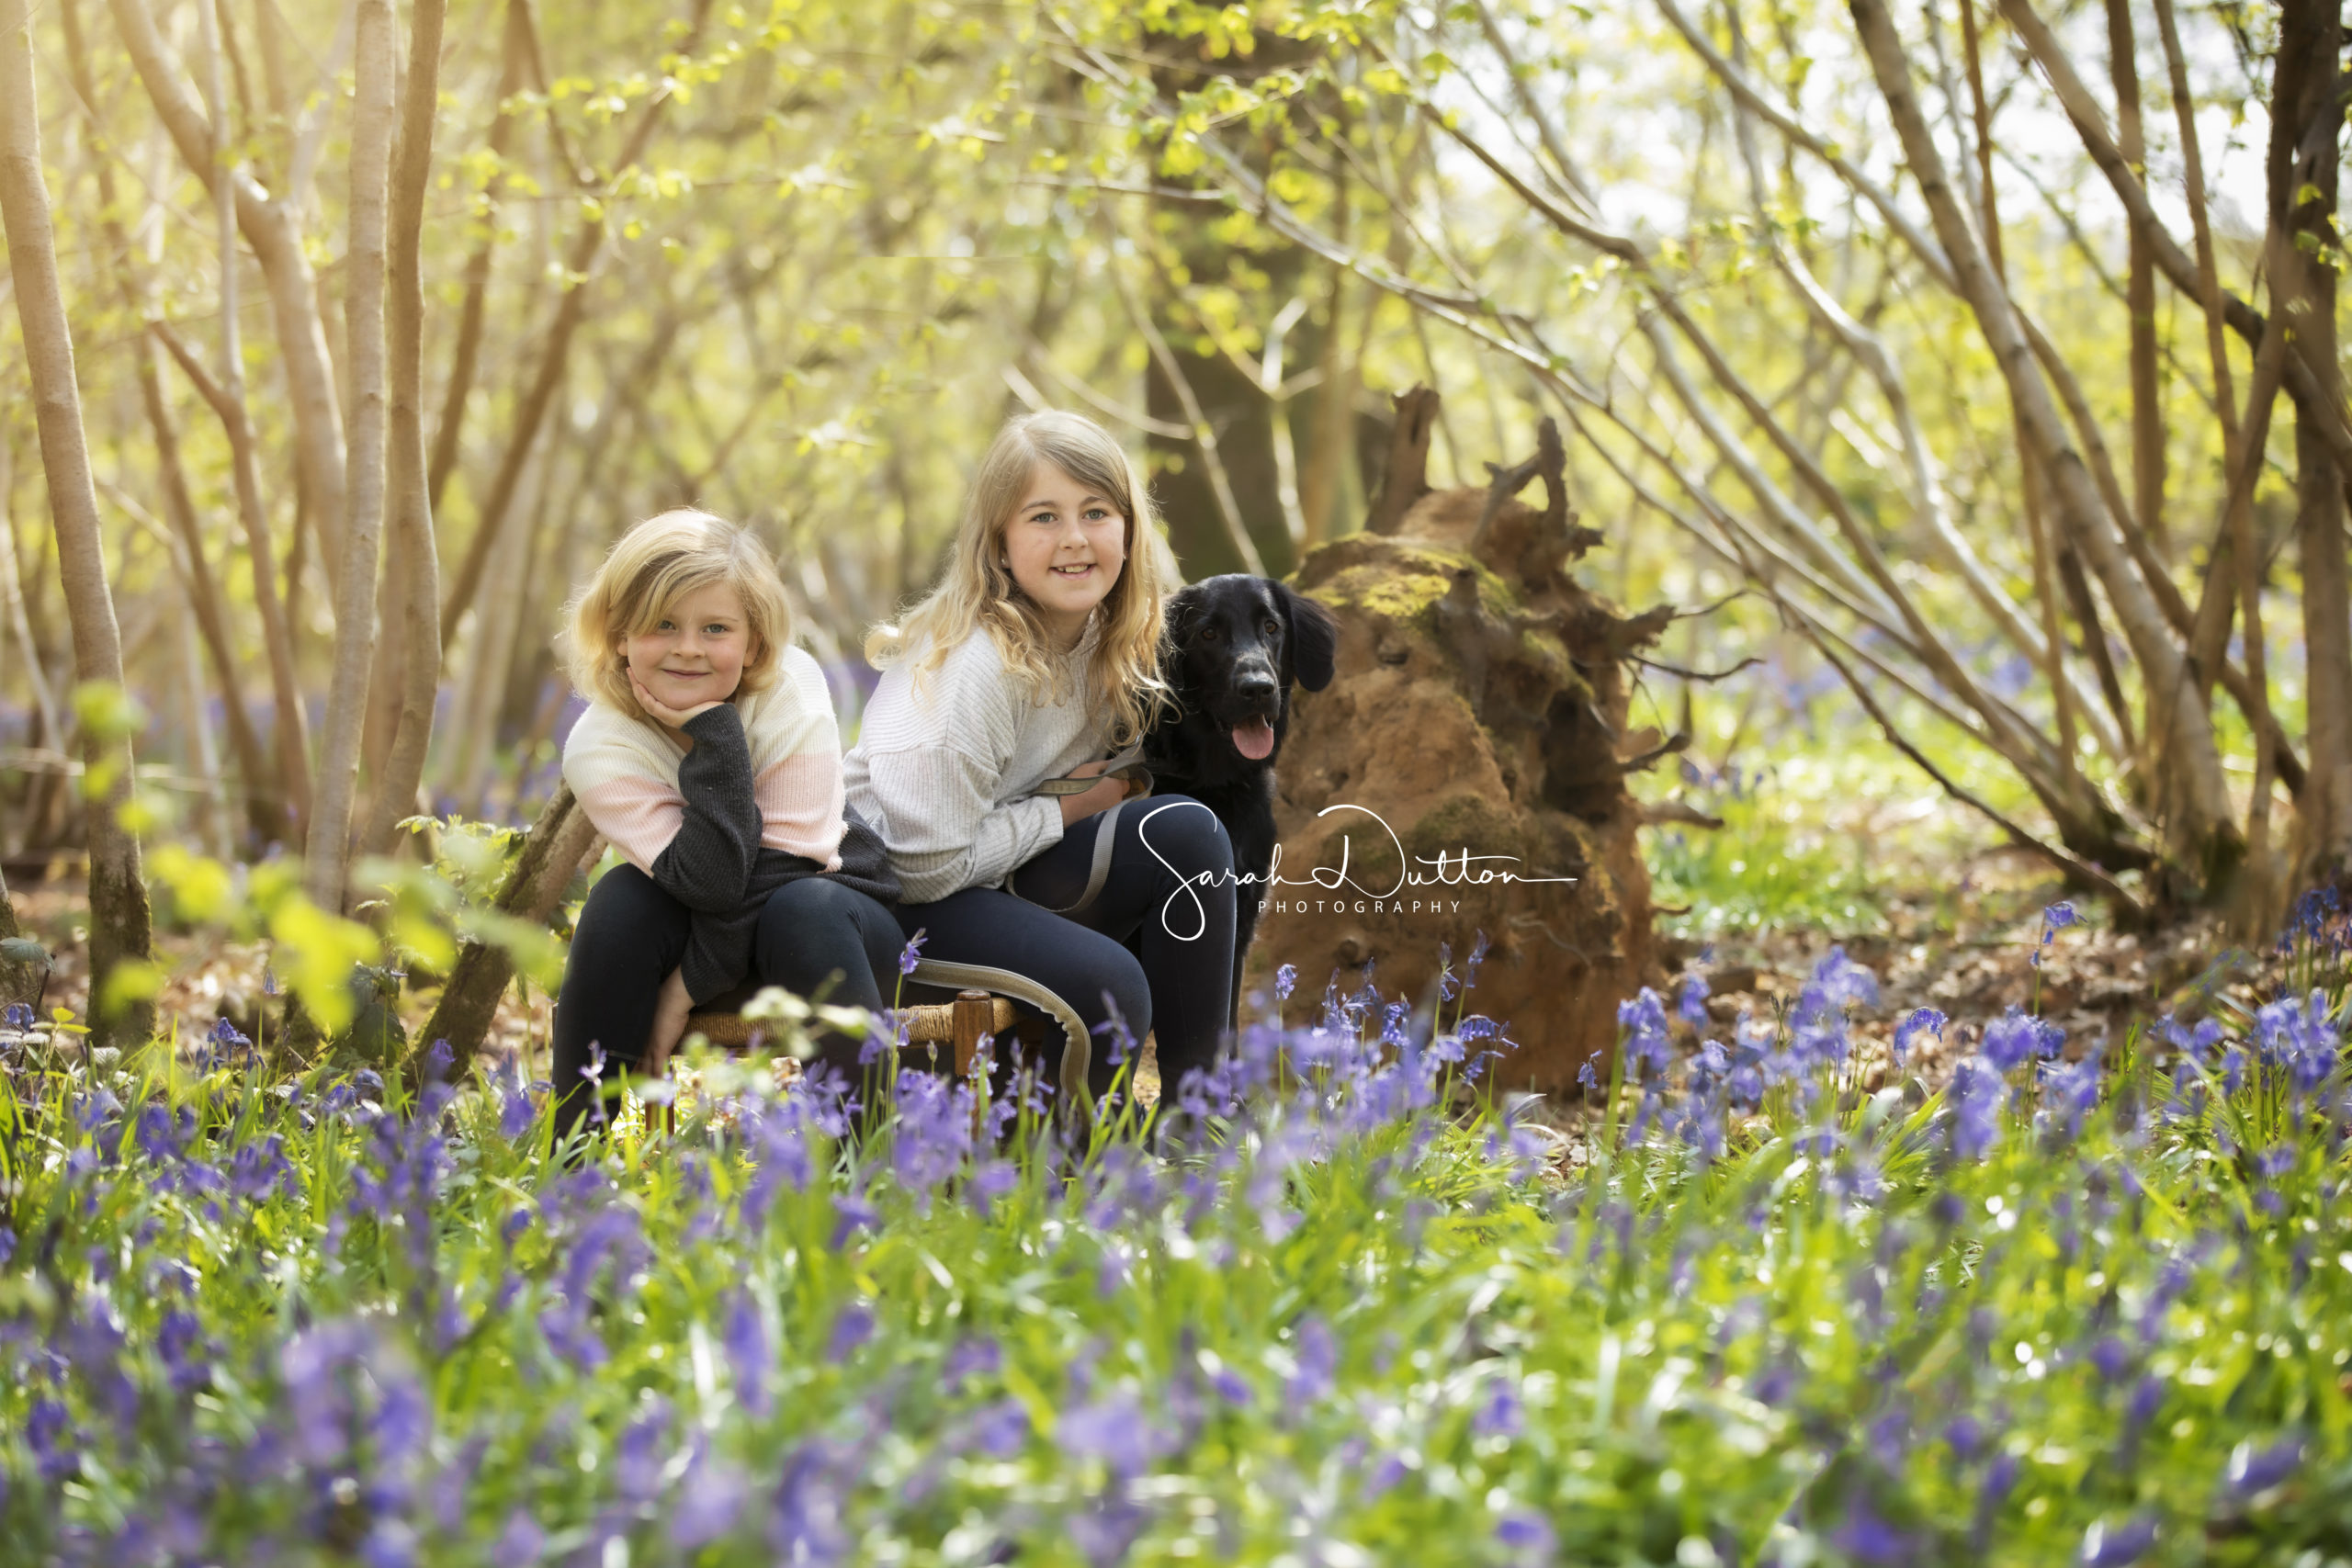 Family photoshoot taken in the Bluebell woods by a professional photographer in Basingstoke Hamsphire